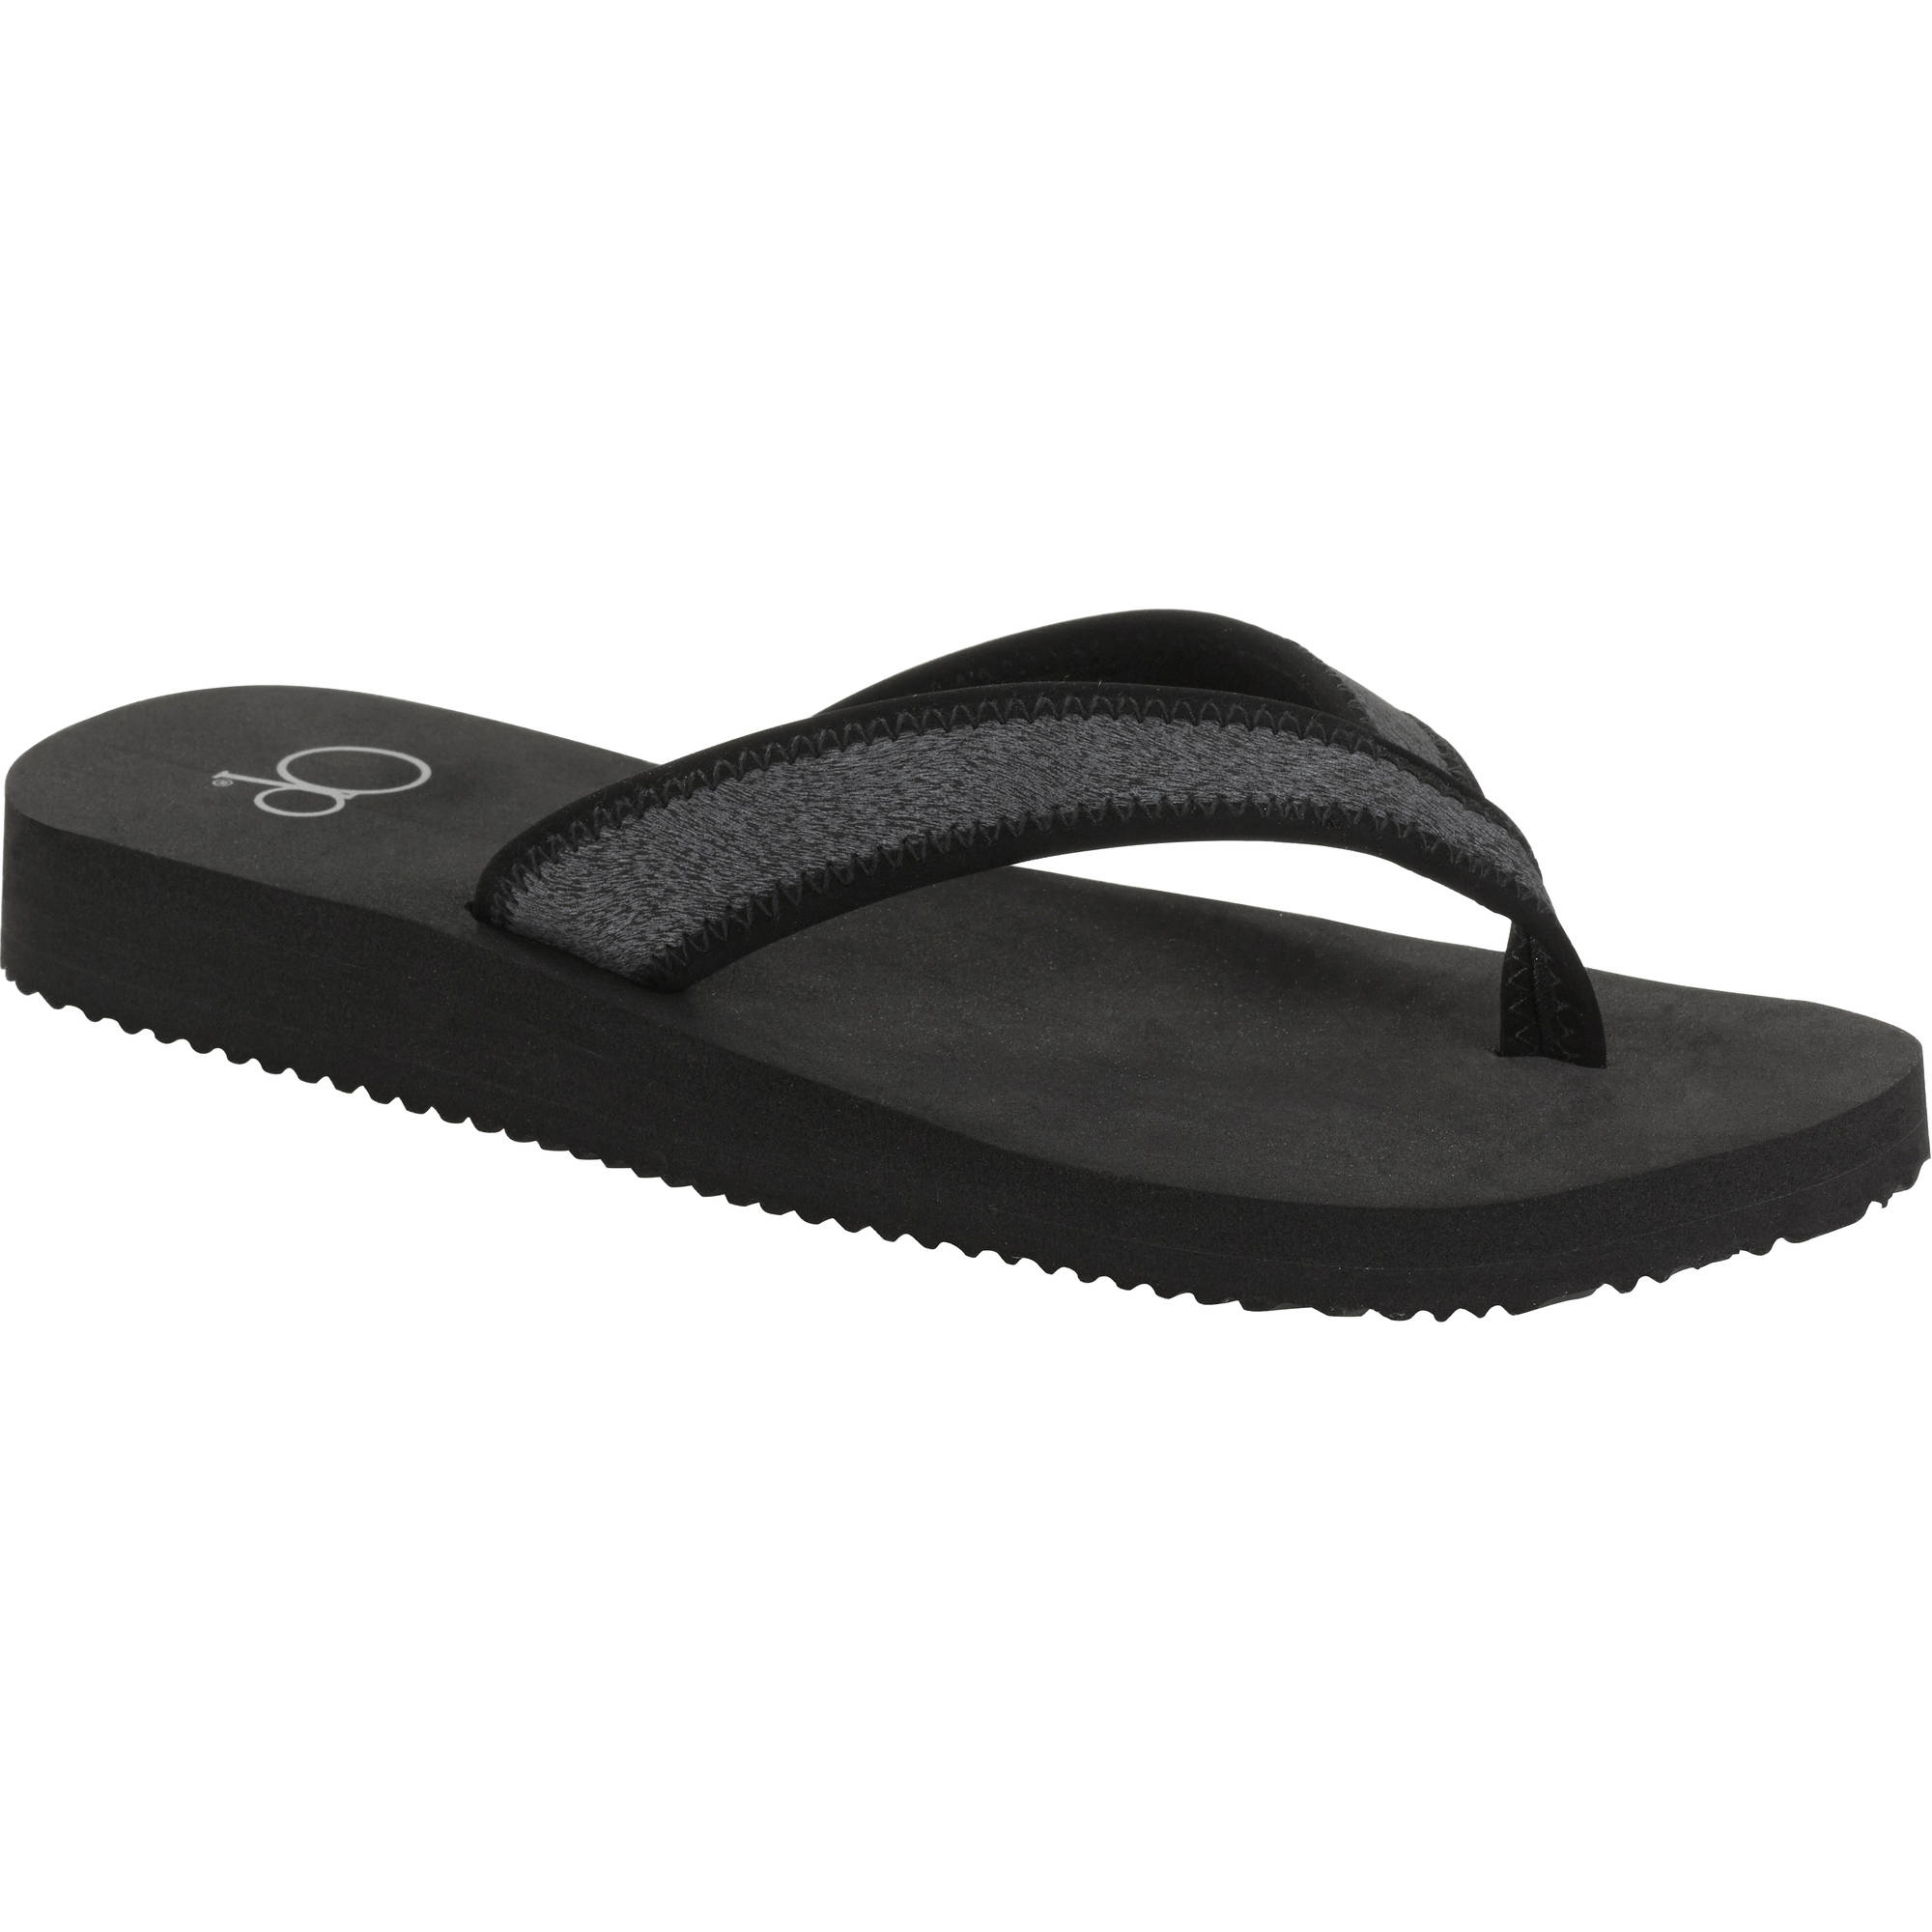 mens nike upcitemdb image comforter sandals sandal hei com comfort wid for op product s sharpen men upc thong